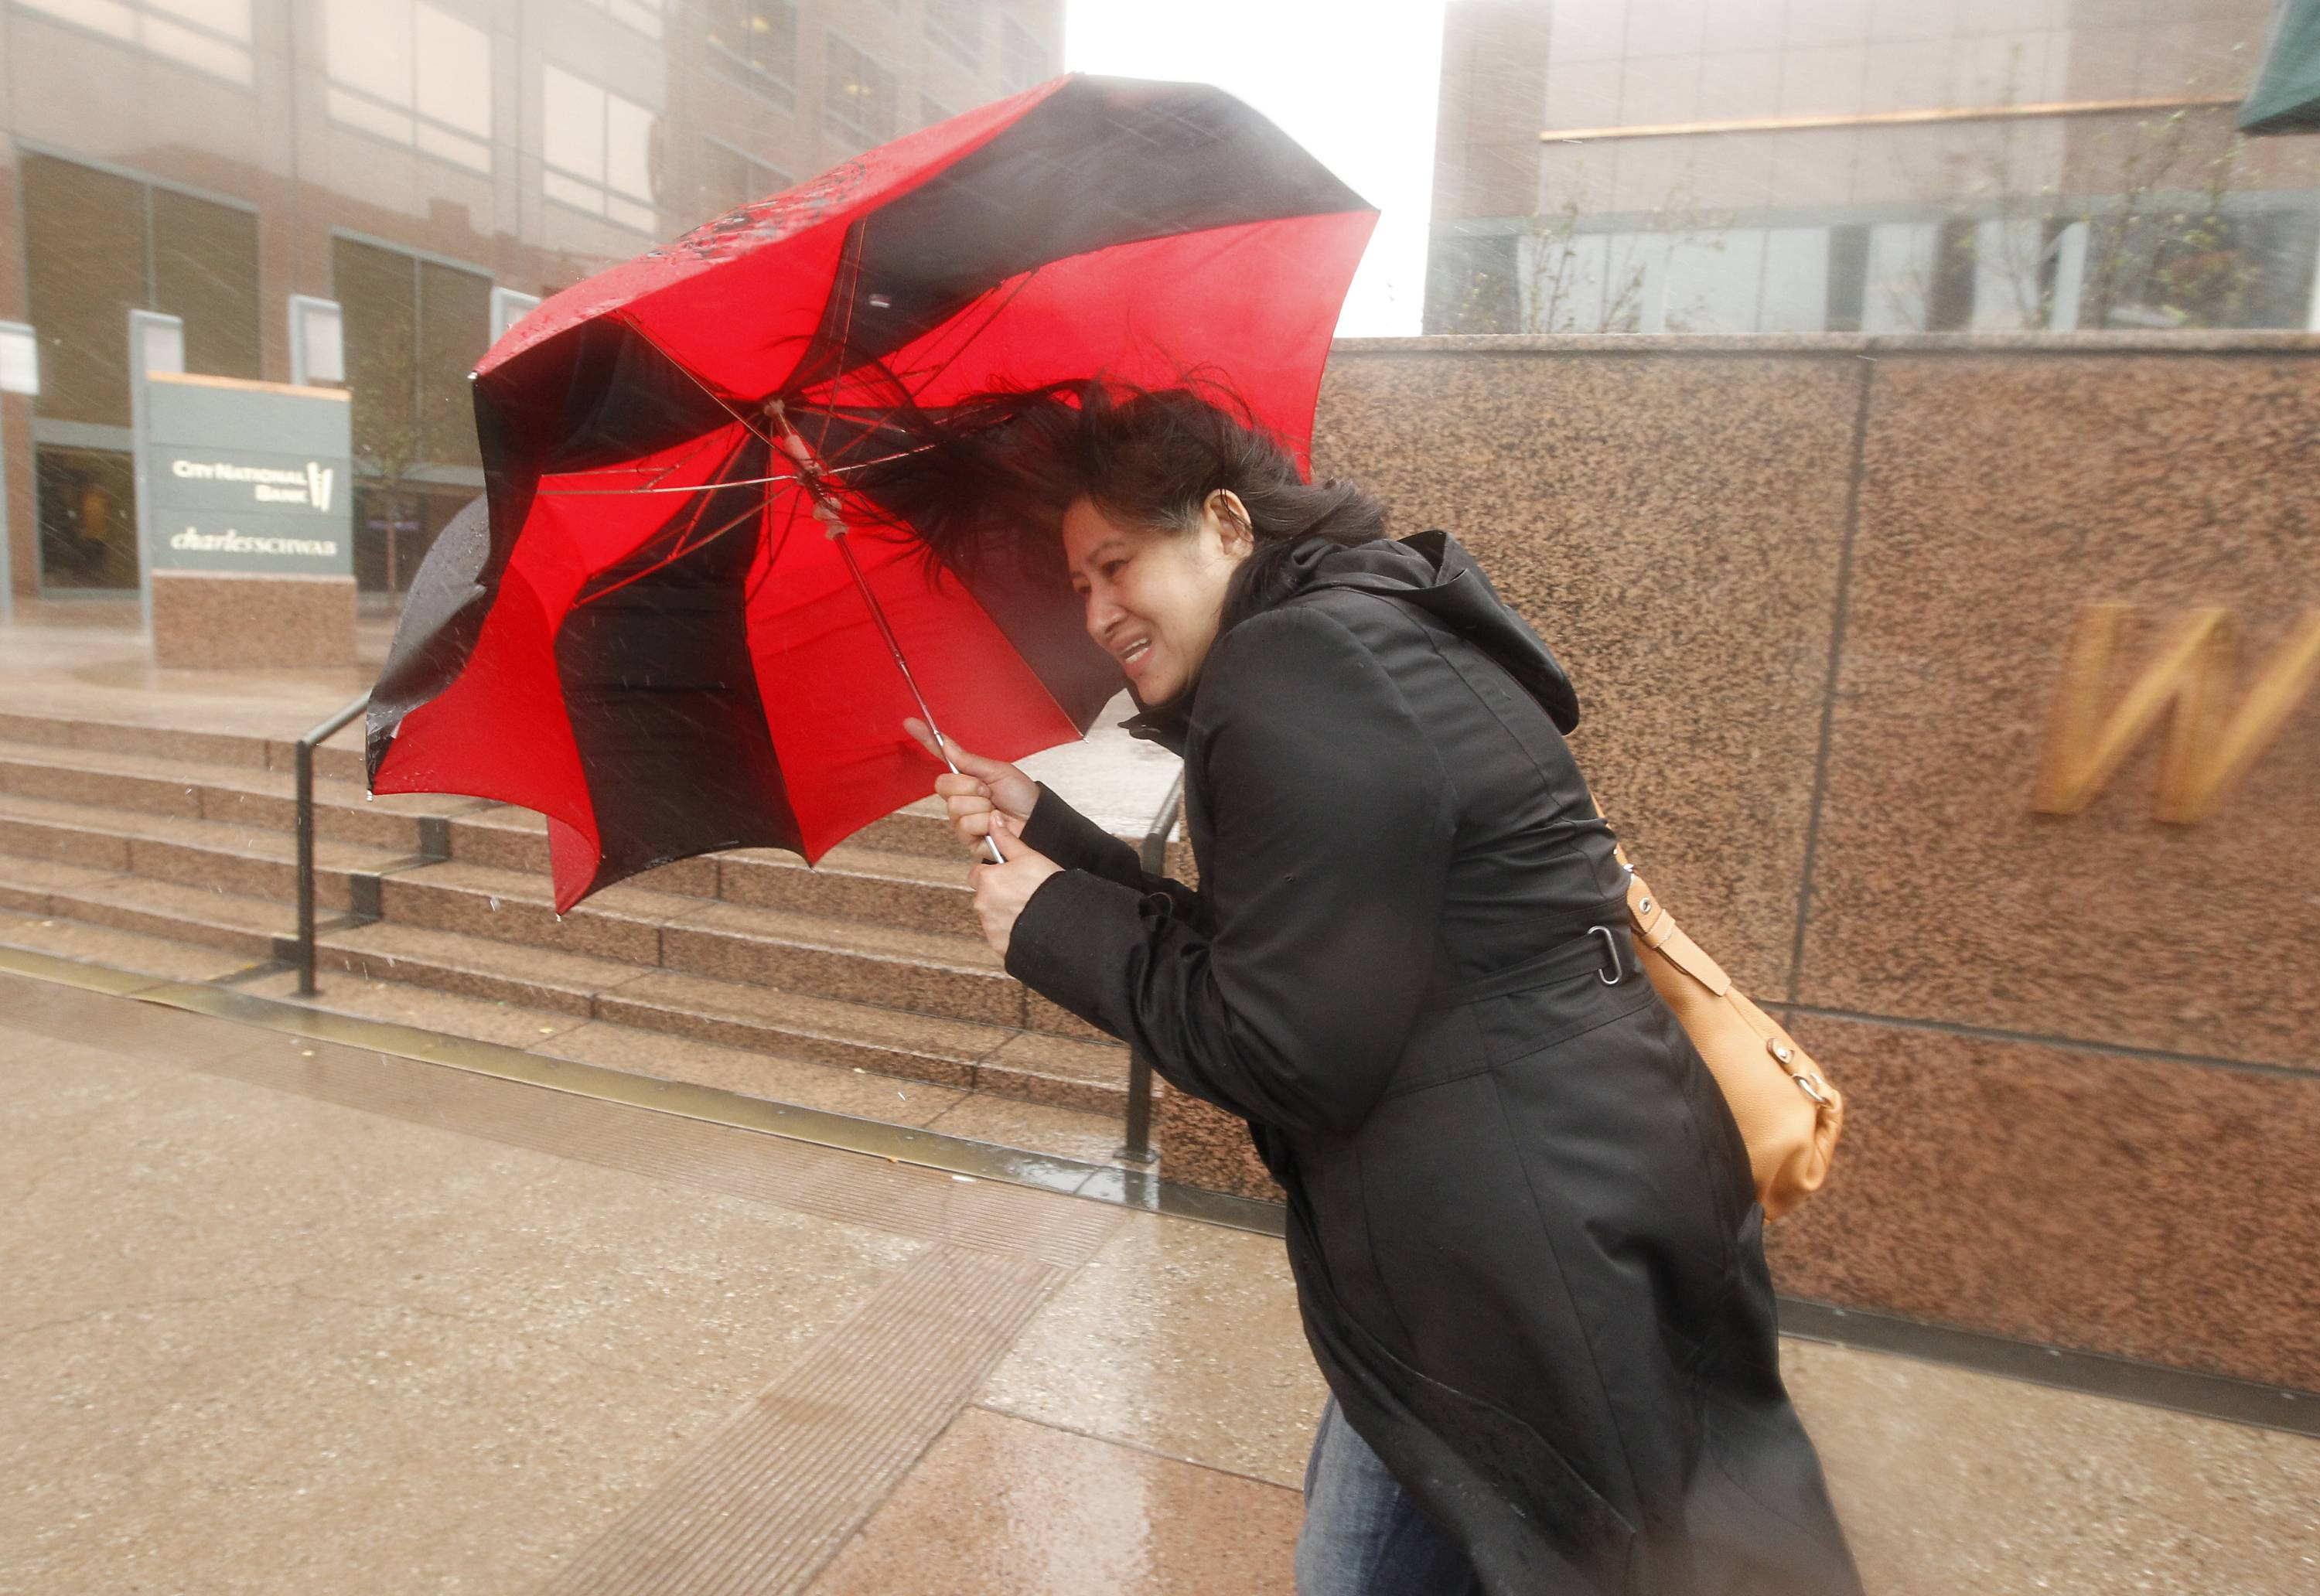 A pedestrian blocks the heavy winds Friday with her umbrella in Los Angeles.